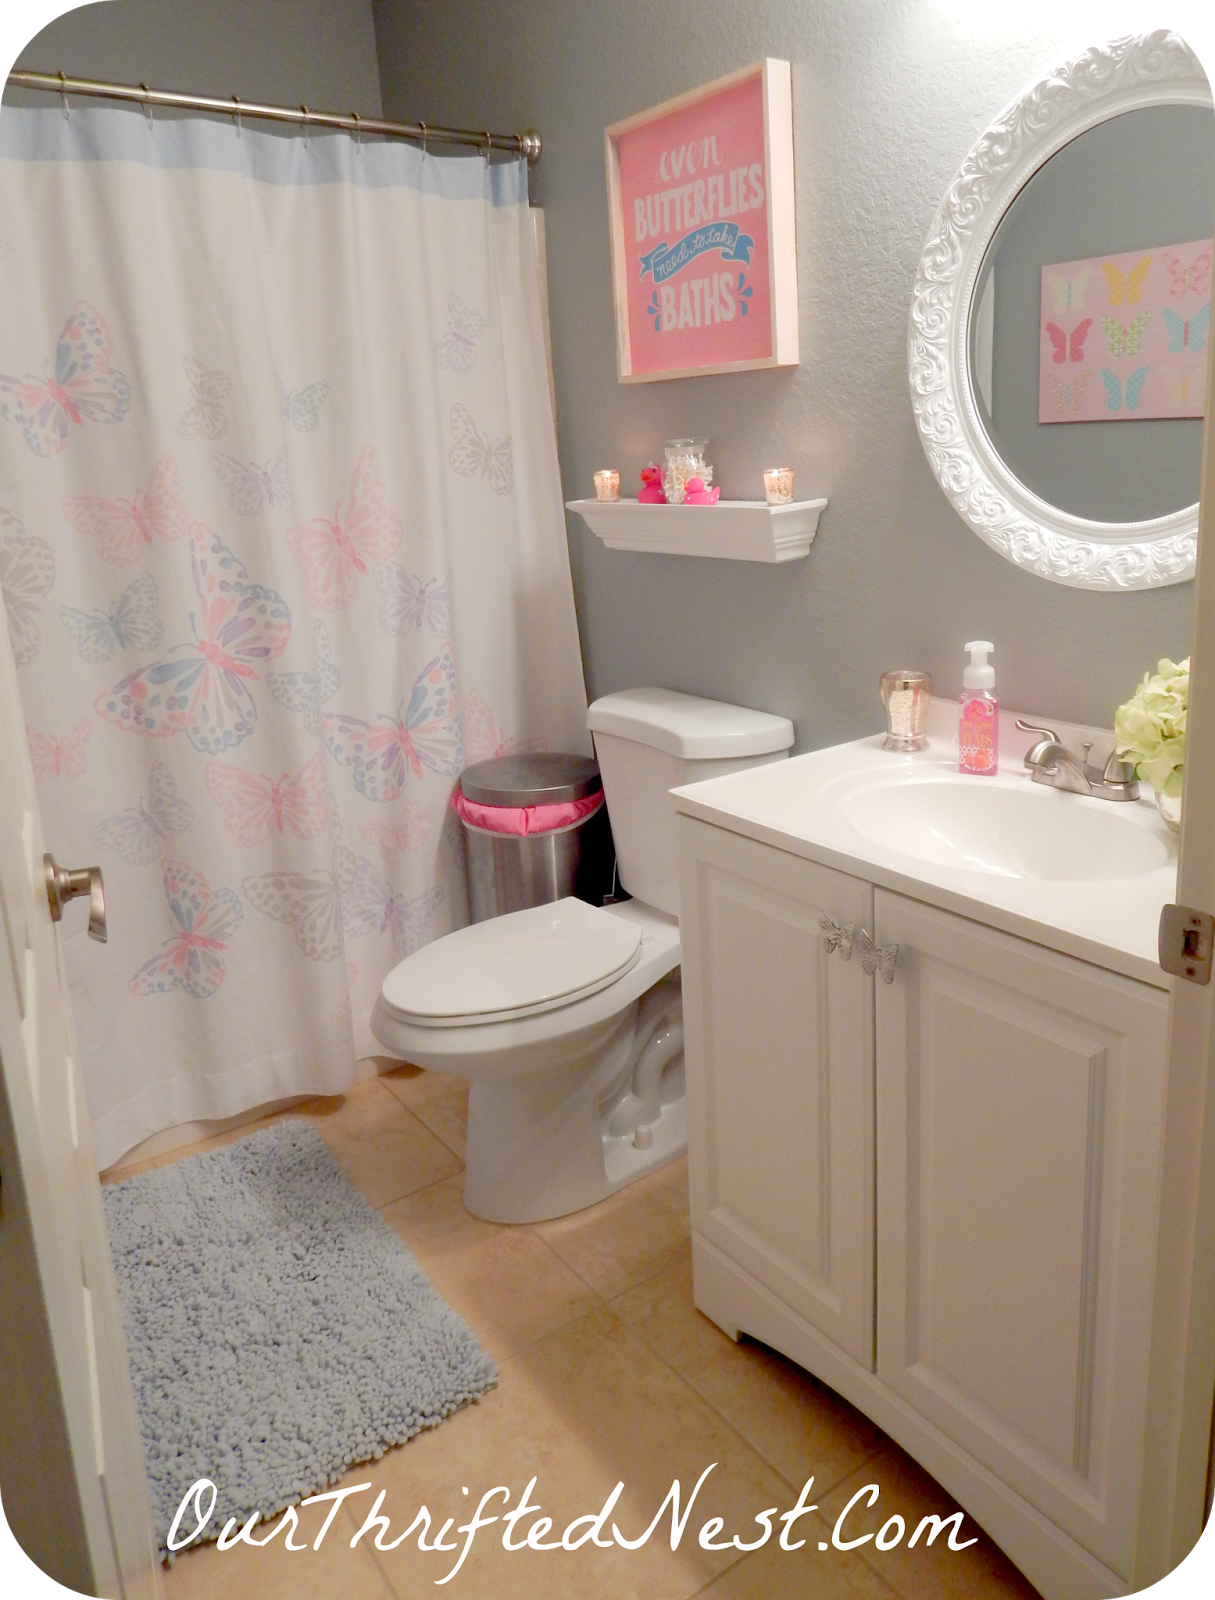 Bathroom Decor: Small Little's Girl's Butterfly Pink, Gray